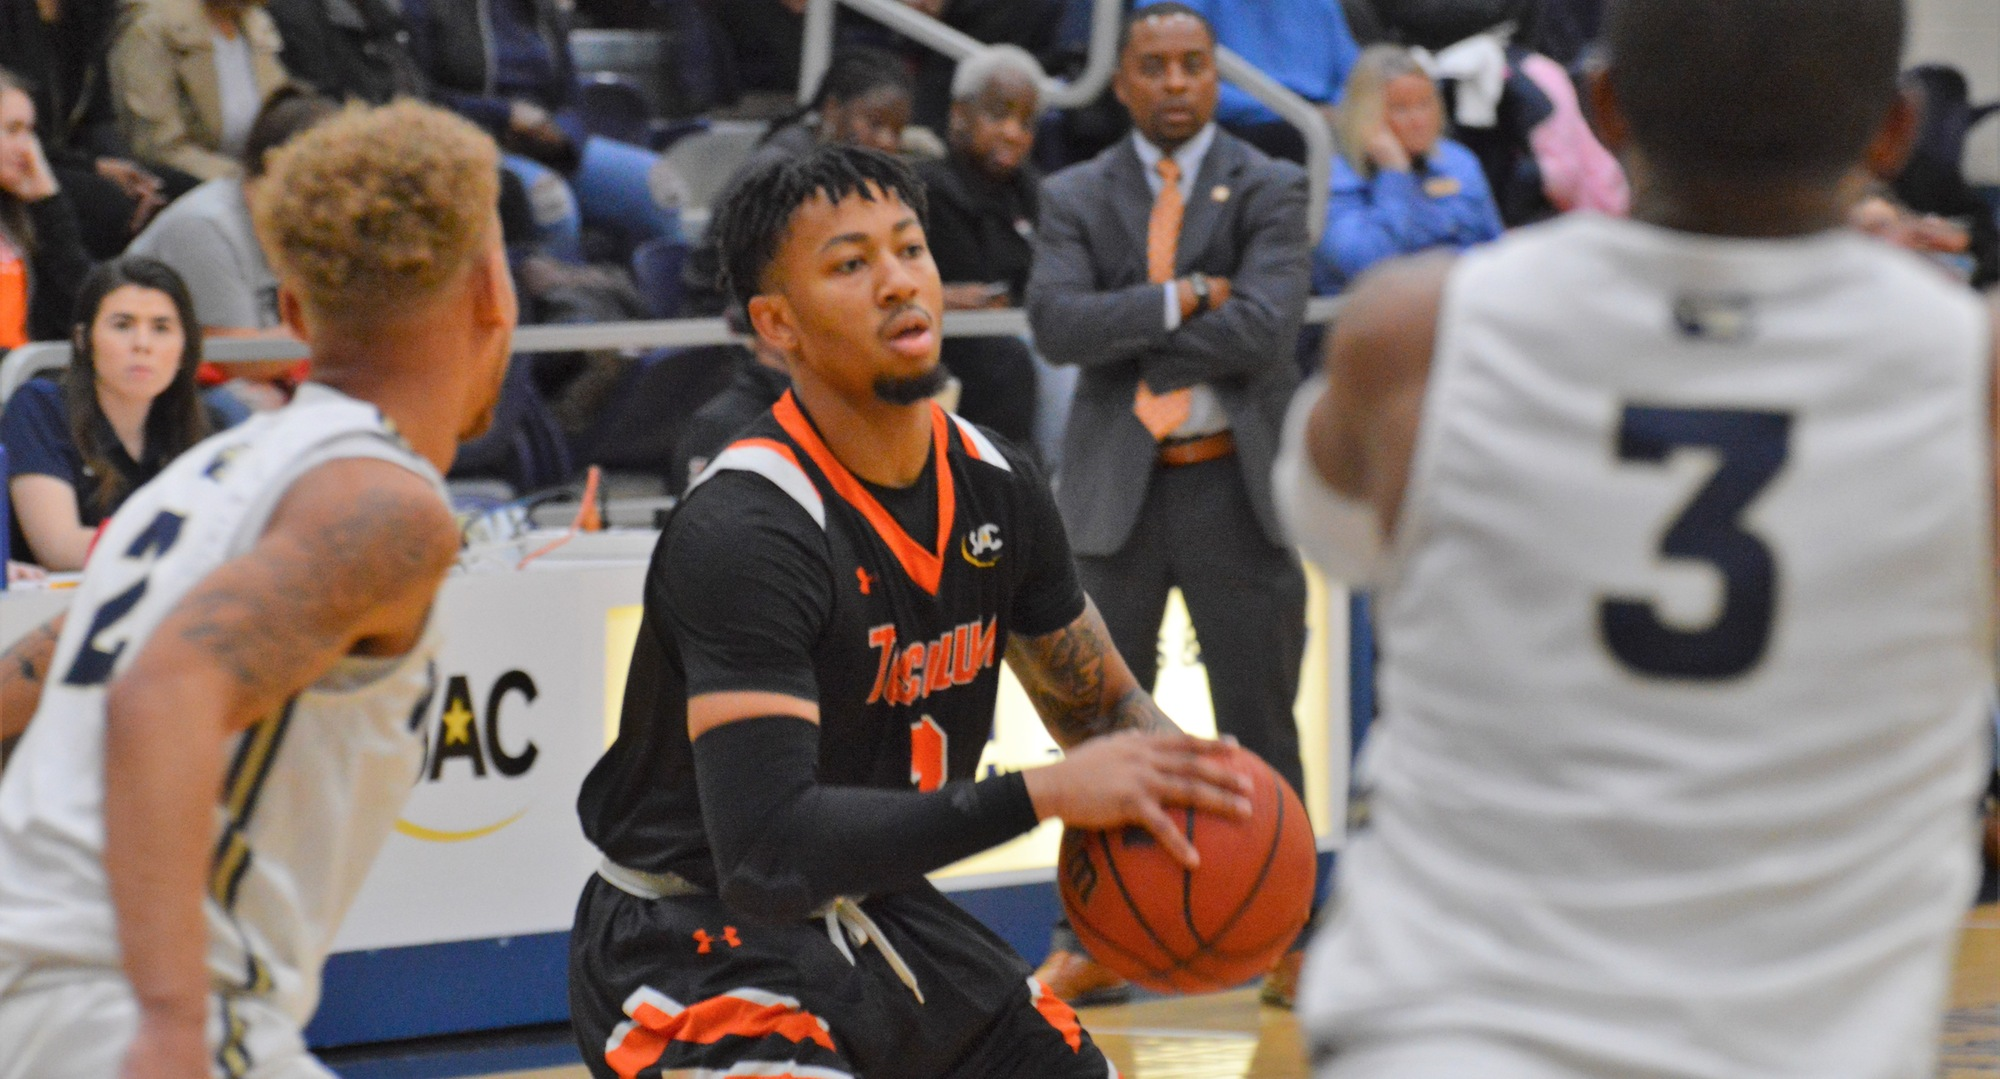 Donovan Donaldson scored a career-high 32 points in Tusculum's 80-77 overtime win at Wingate